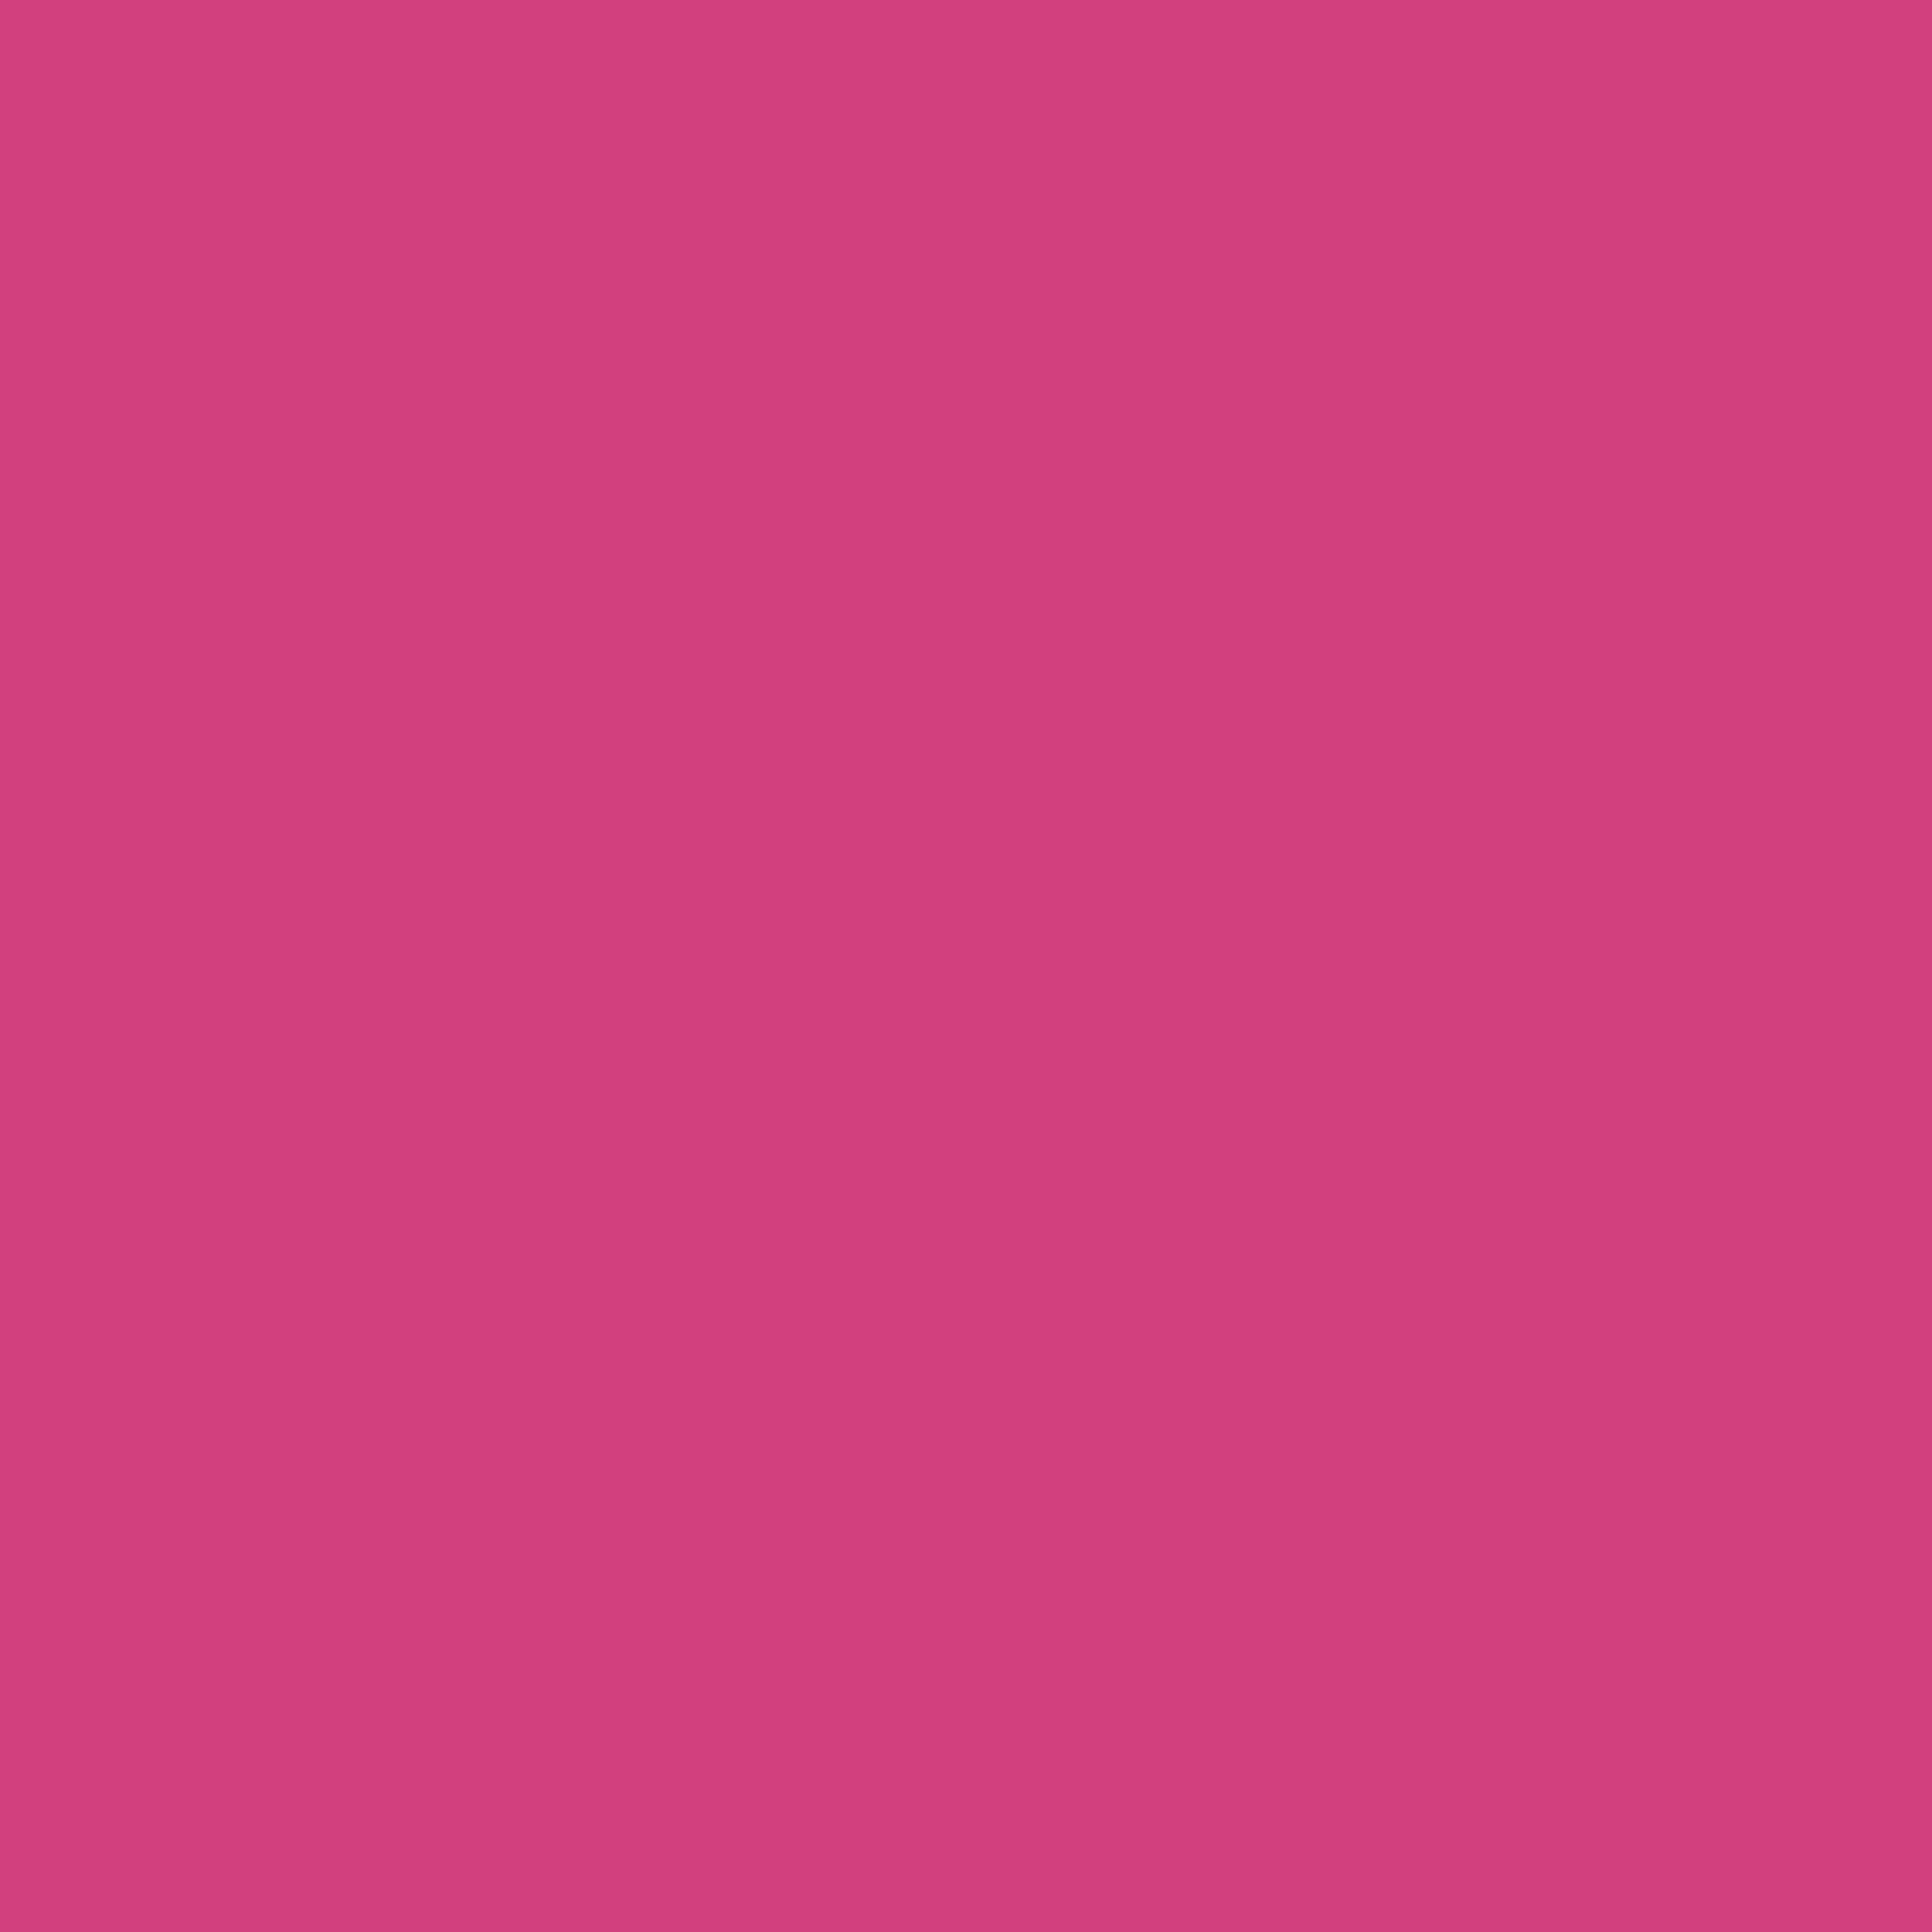 2048x2048 Magenta Pantone Solid Color Background